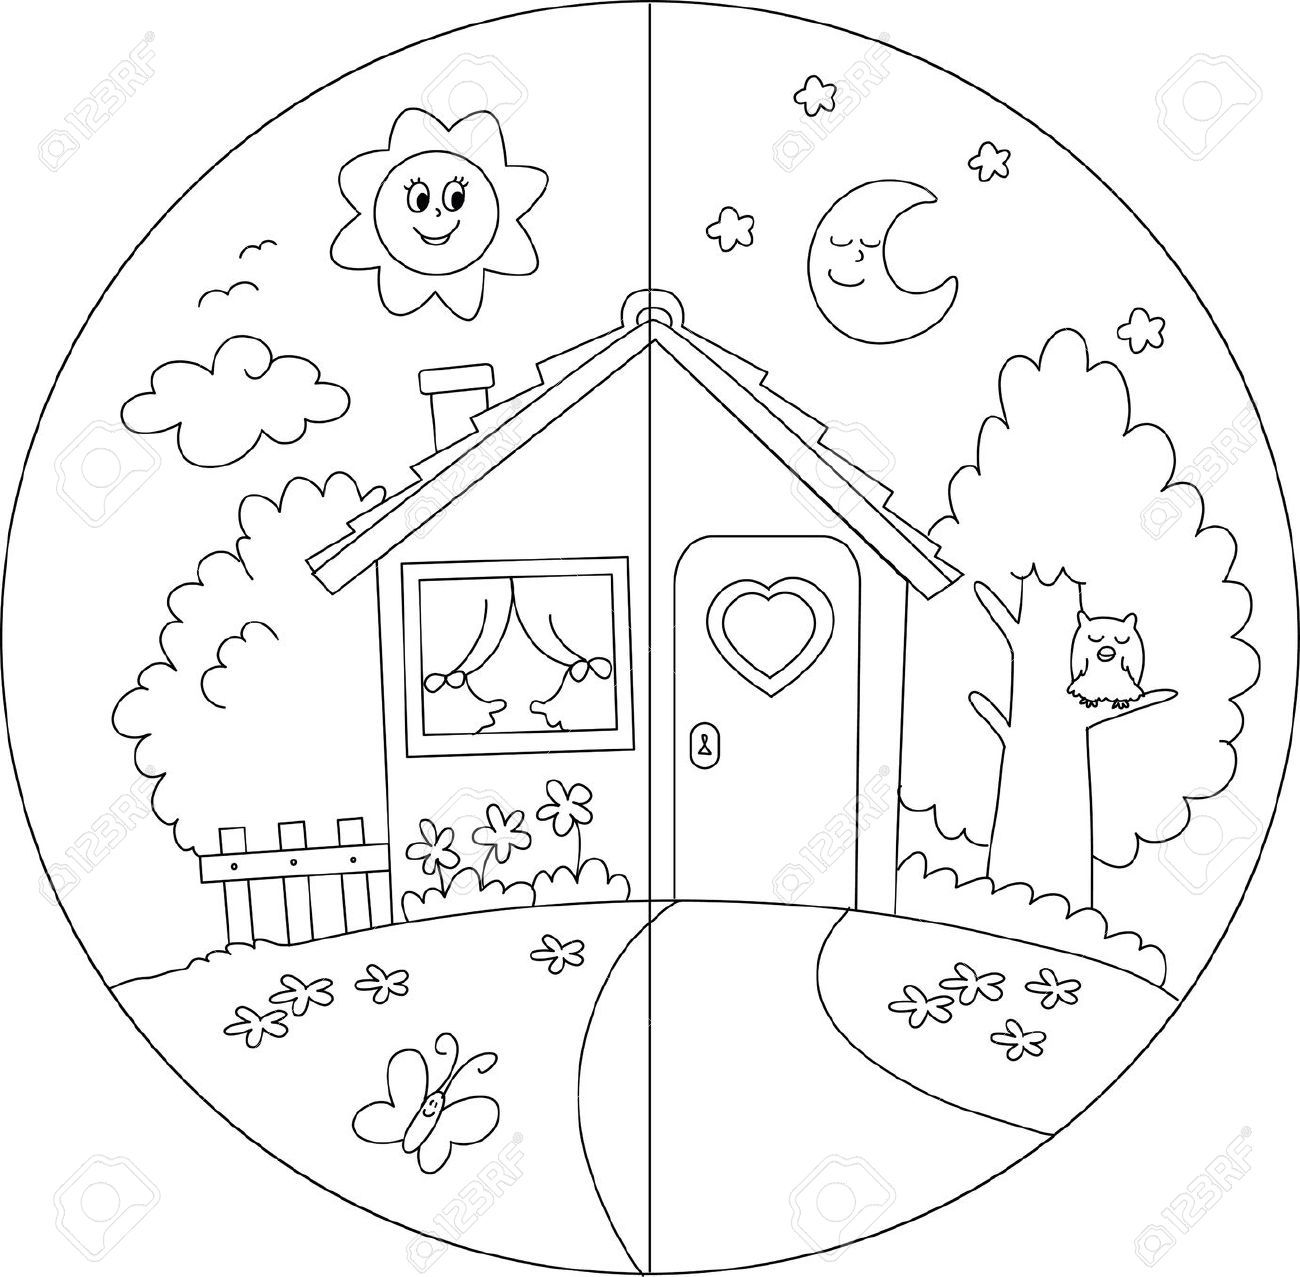 Childrens day colouring pages - Night And Day Colouring Sheets Google Search